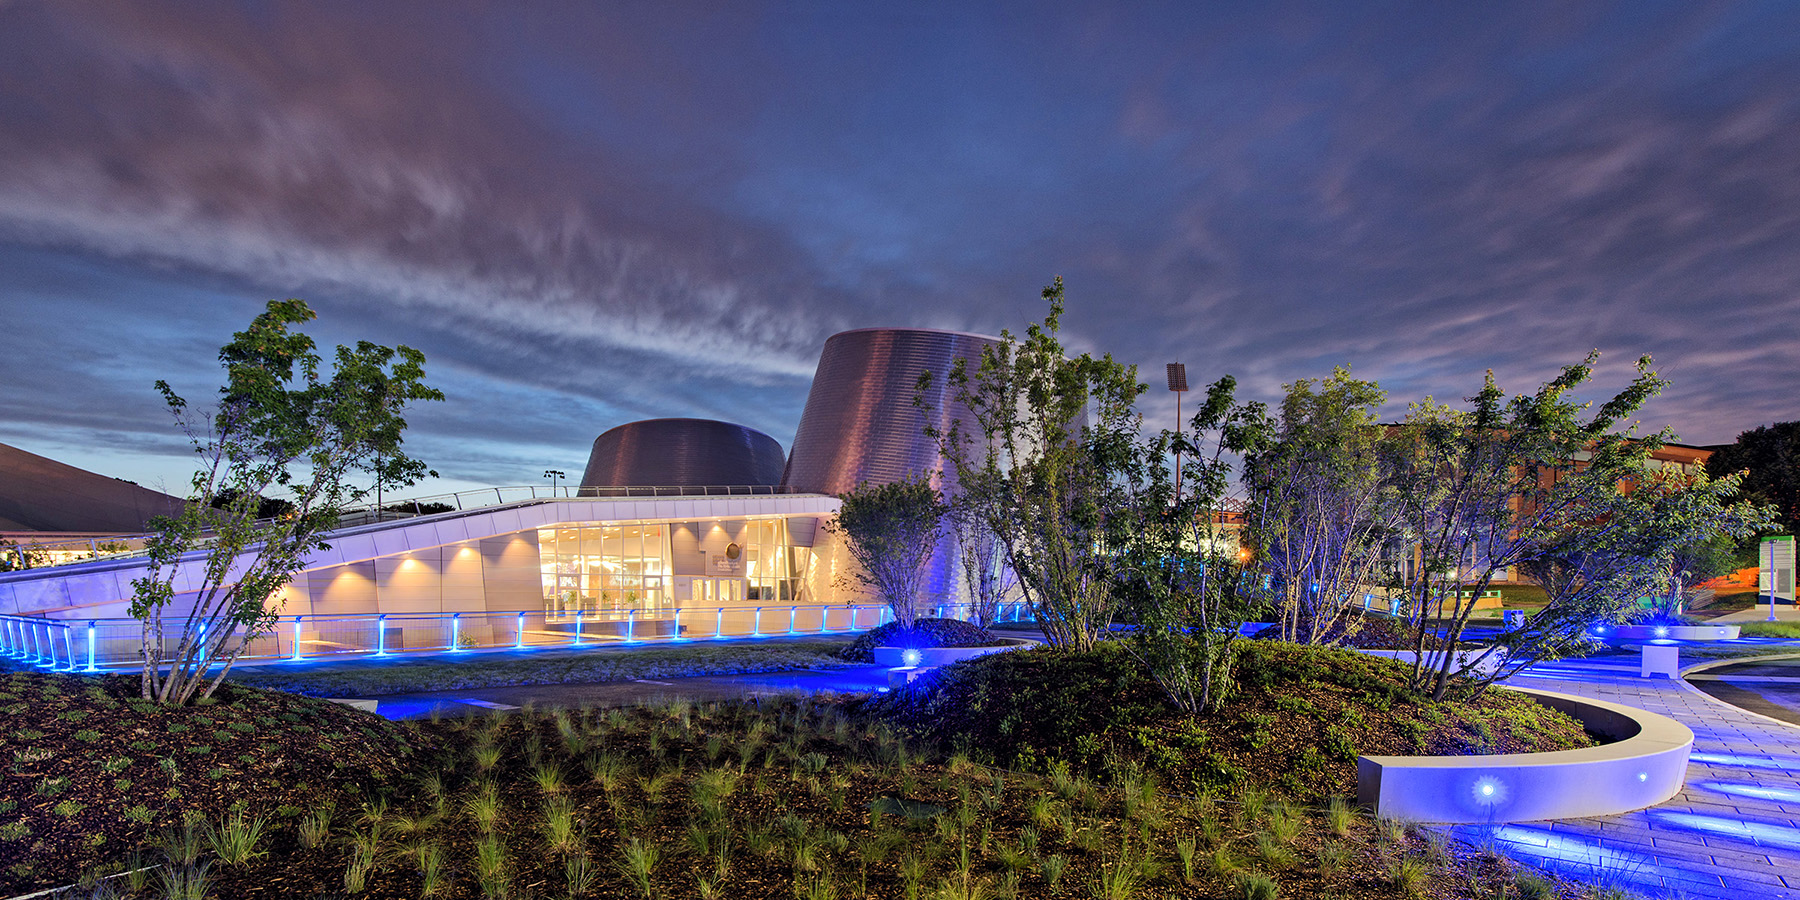 Architecture Photography: Montreal Rio Tinto Alcan Planetarium at the blue hour